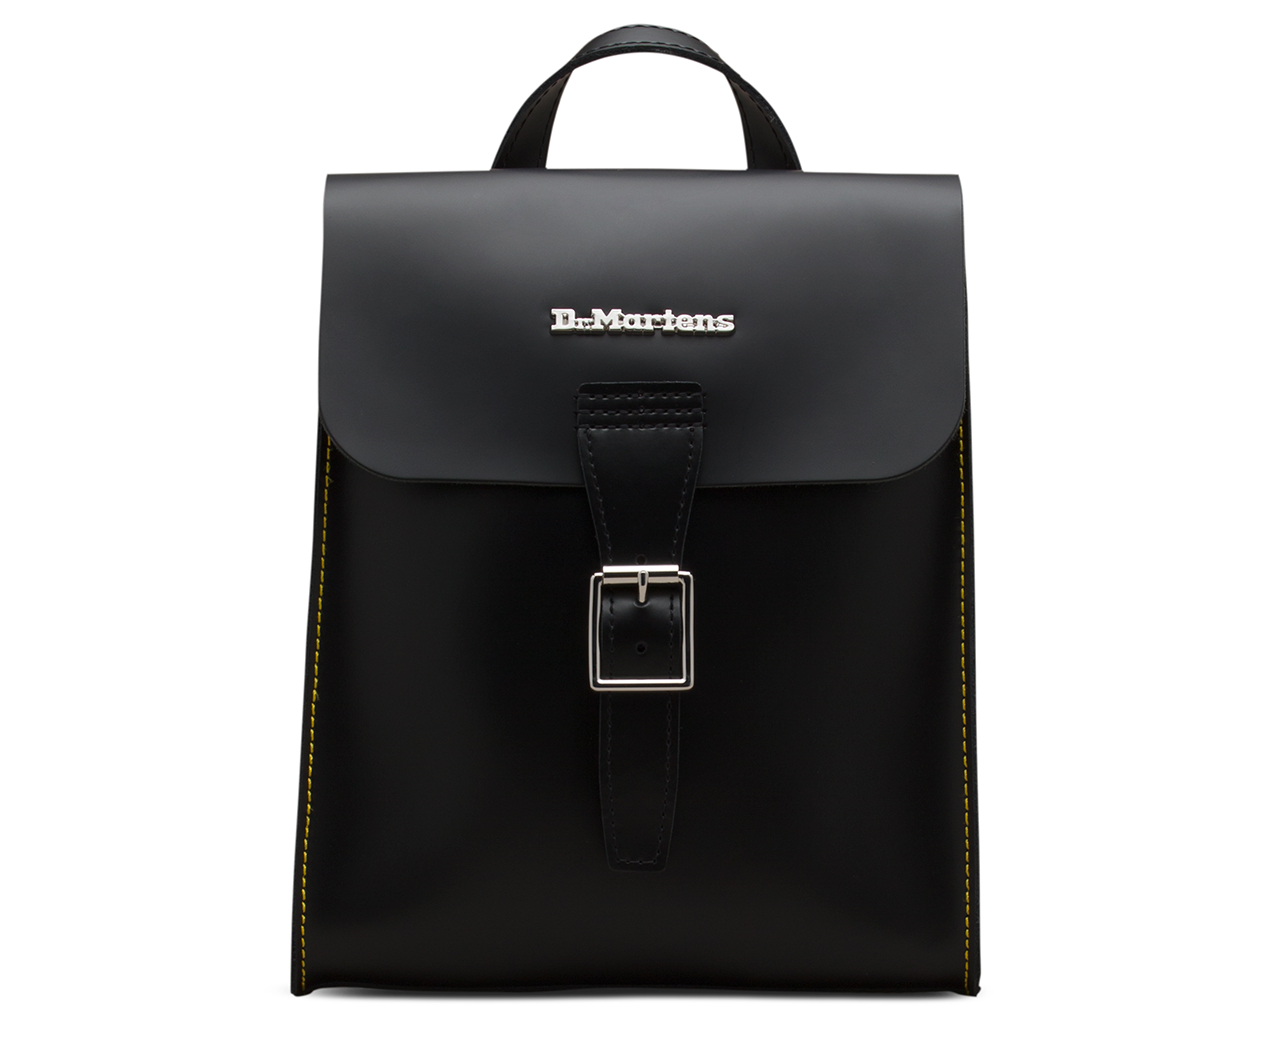 34026d7bc5 MINI LEATHER BACKPACK